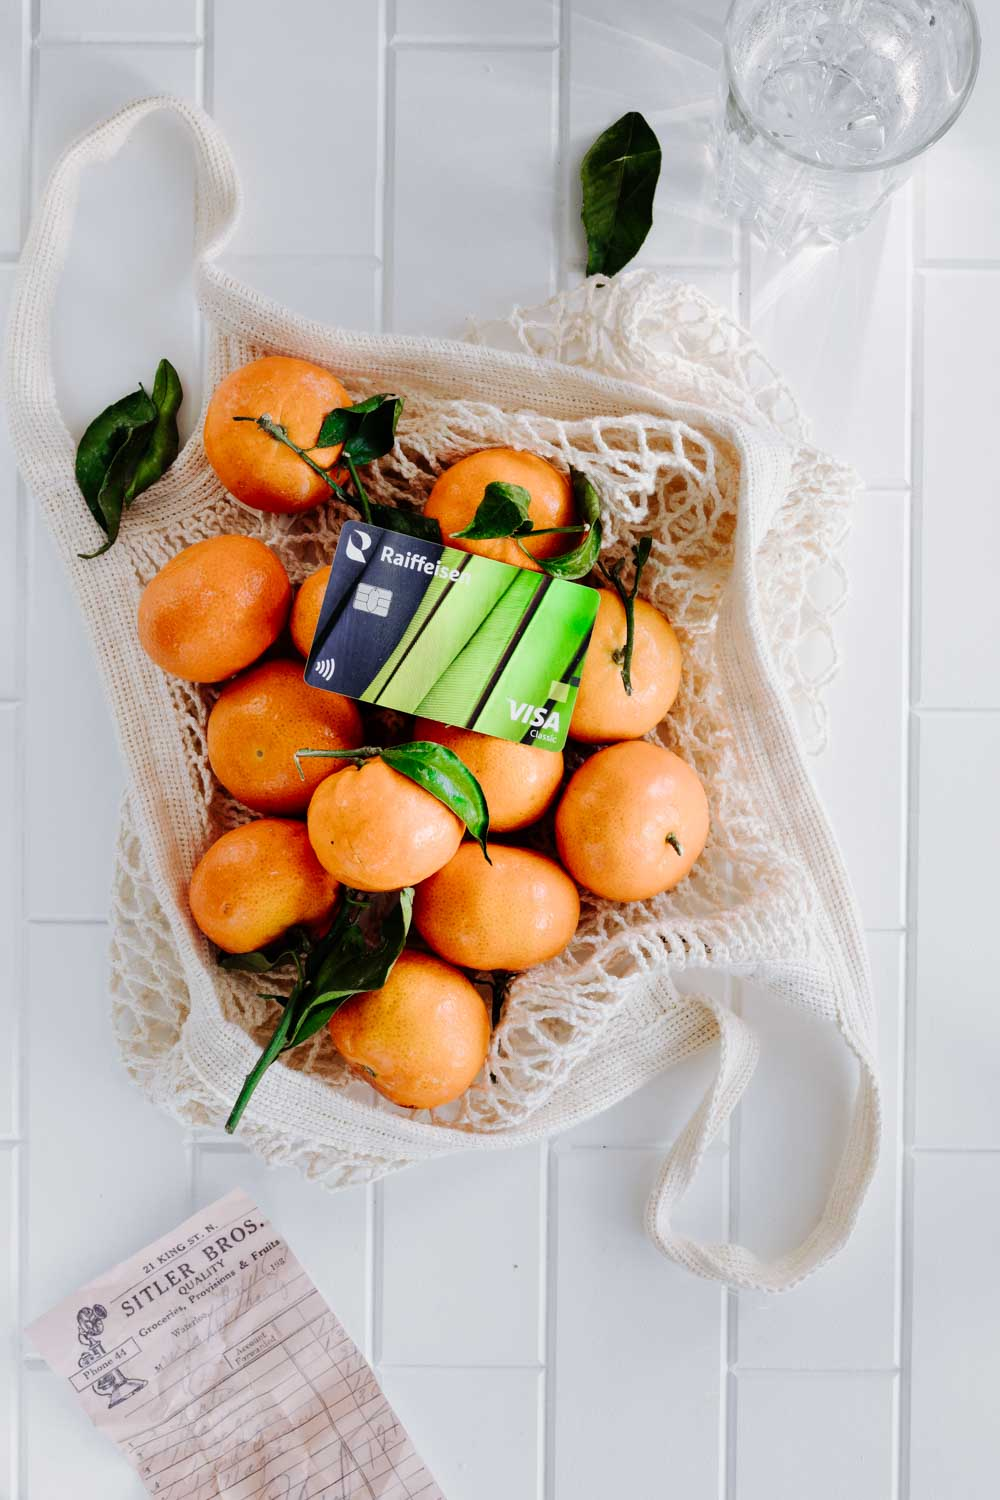 an open cotton shopping bag with mandarins and green leaves on a marble table with a bank card in the middle of the mandarins